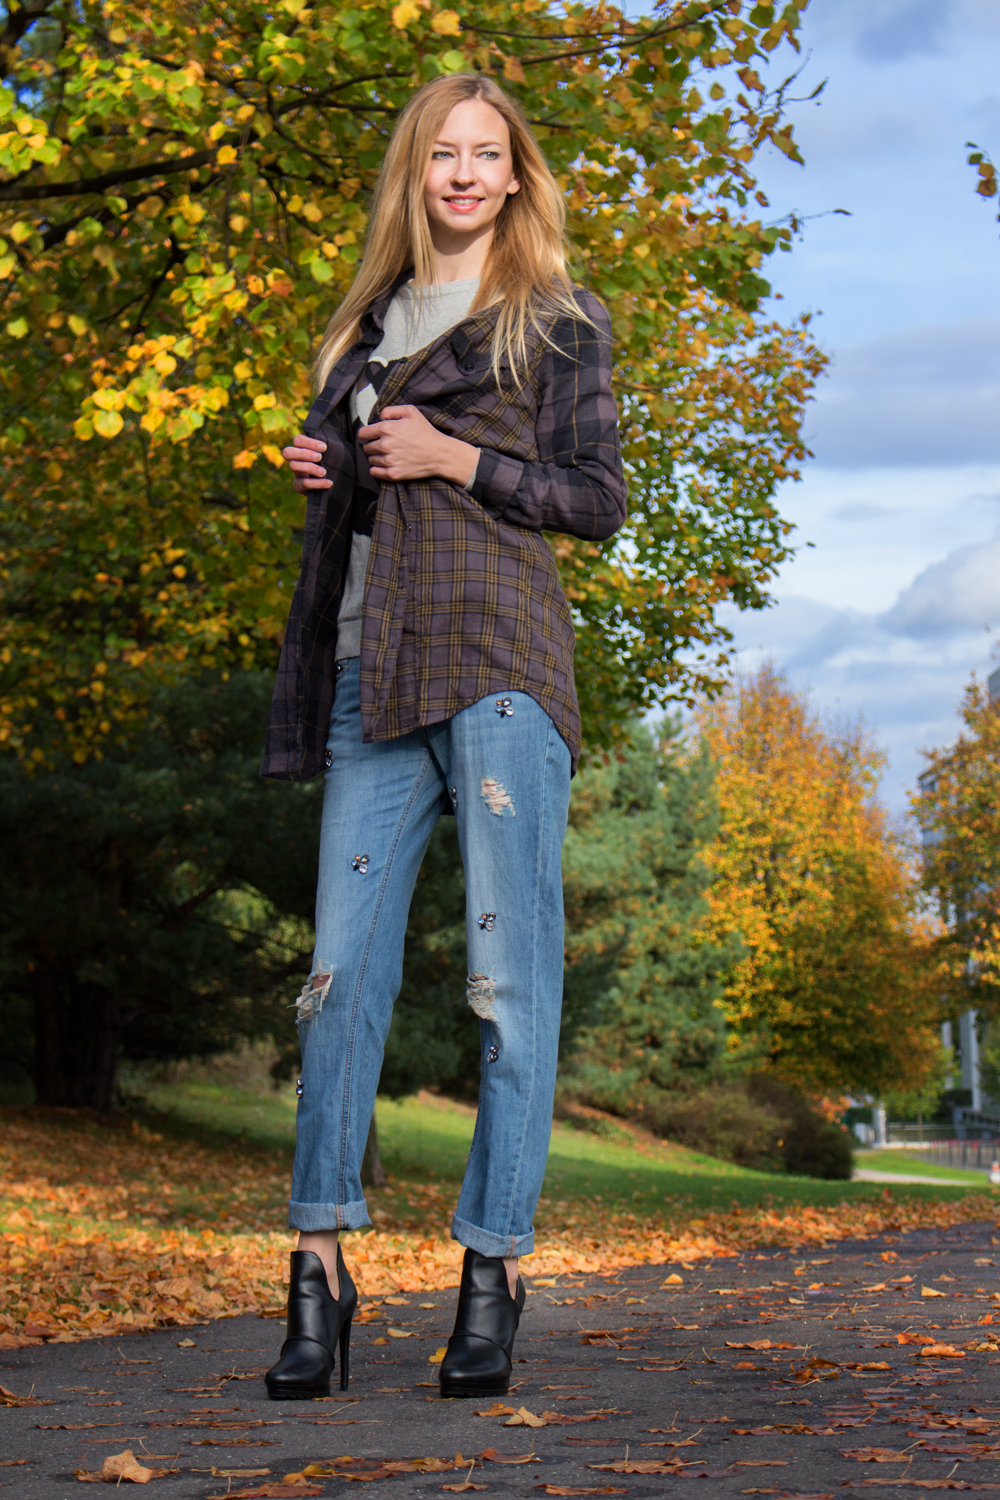 Boyish Charme: boyfriend jeans & ankle boots by Zara, sweater by Sugarhill, checked flannel shirt by Blend She